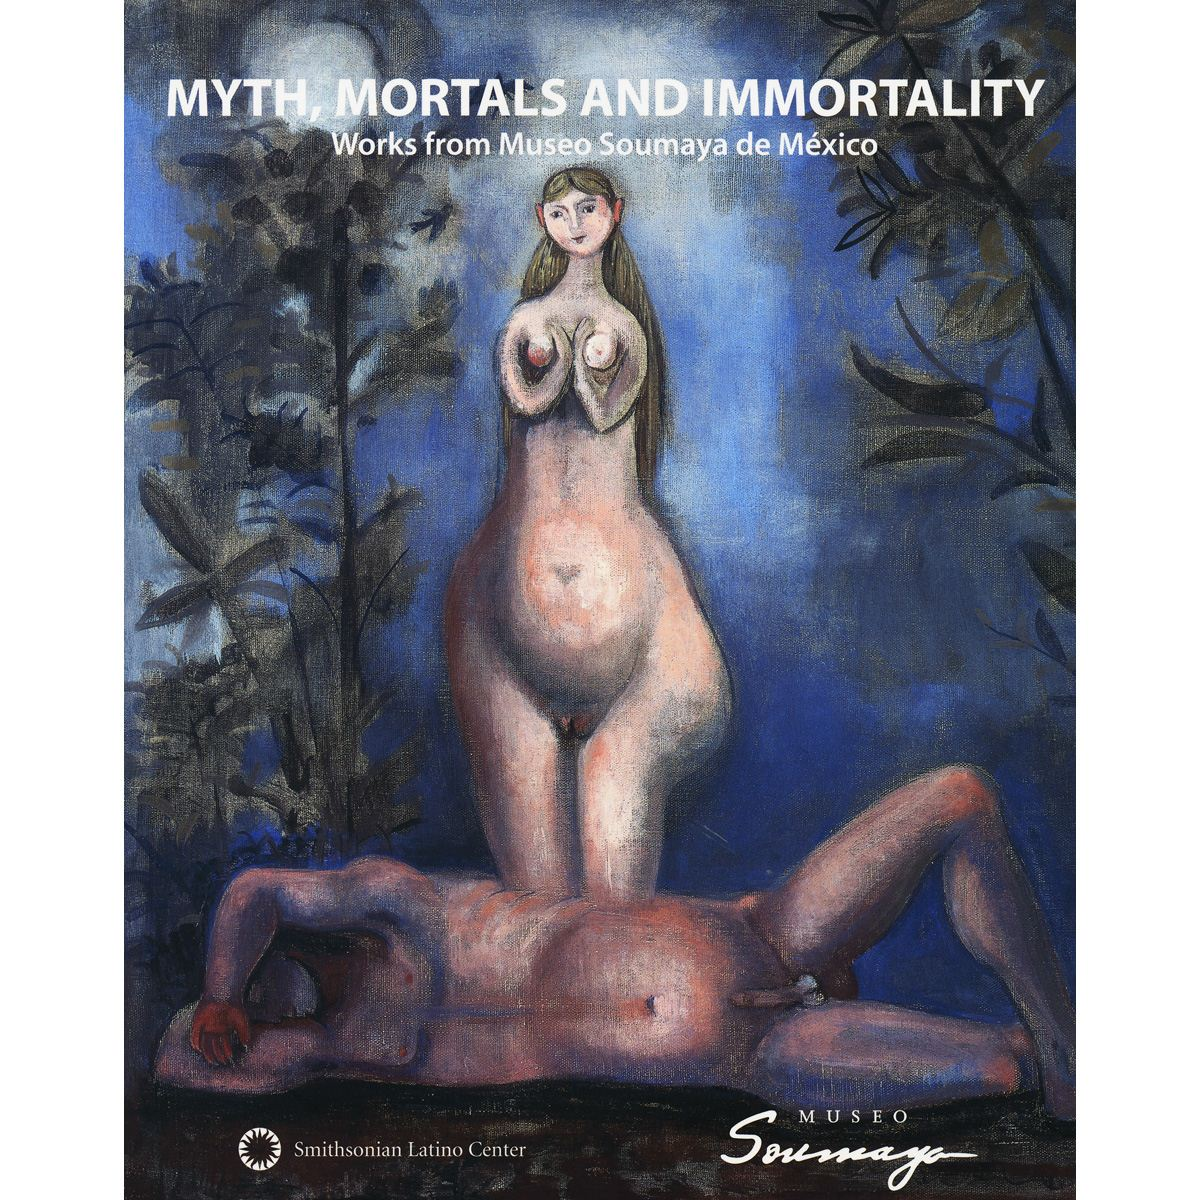 Myth mortals and inmortality